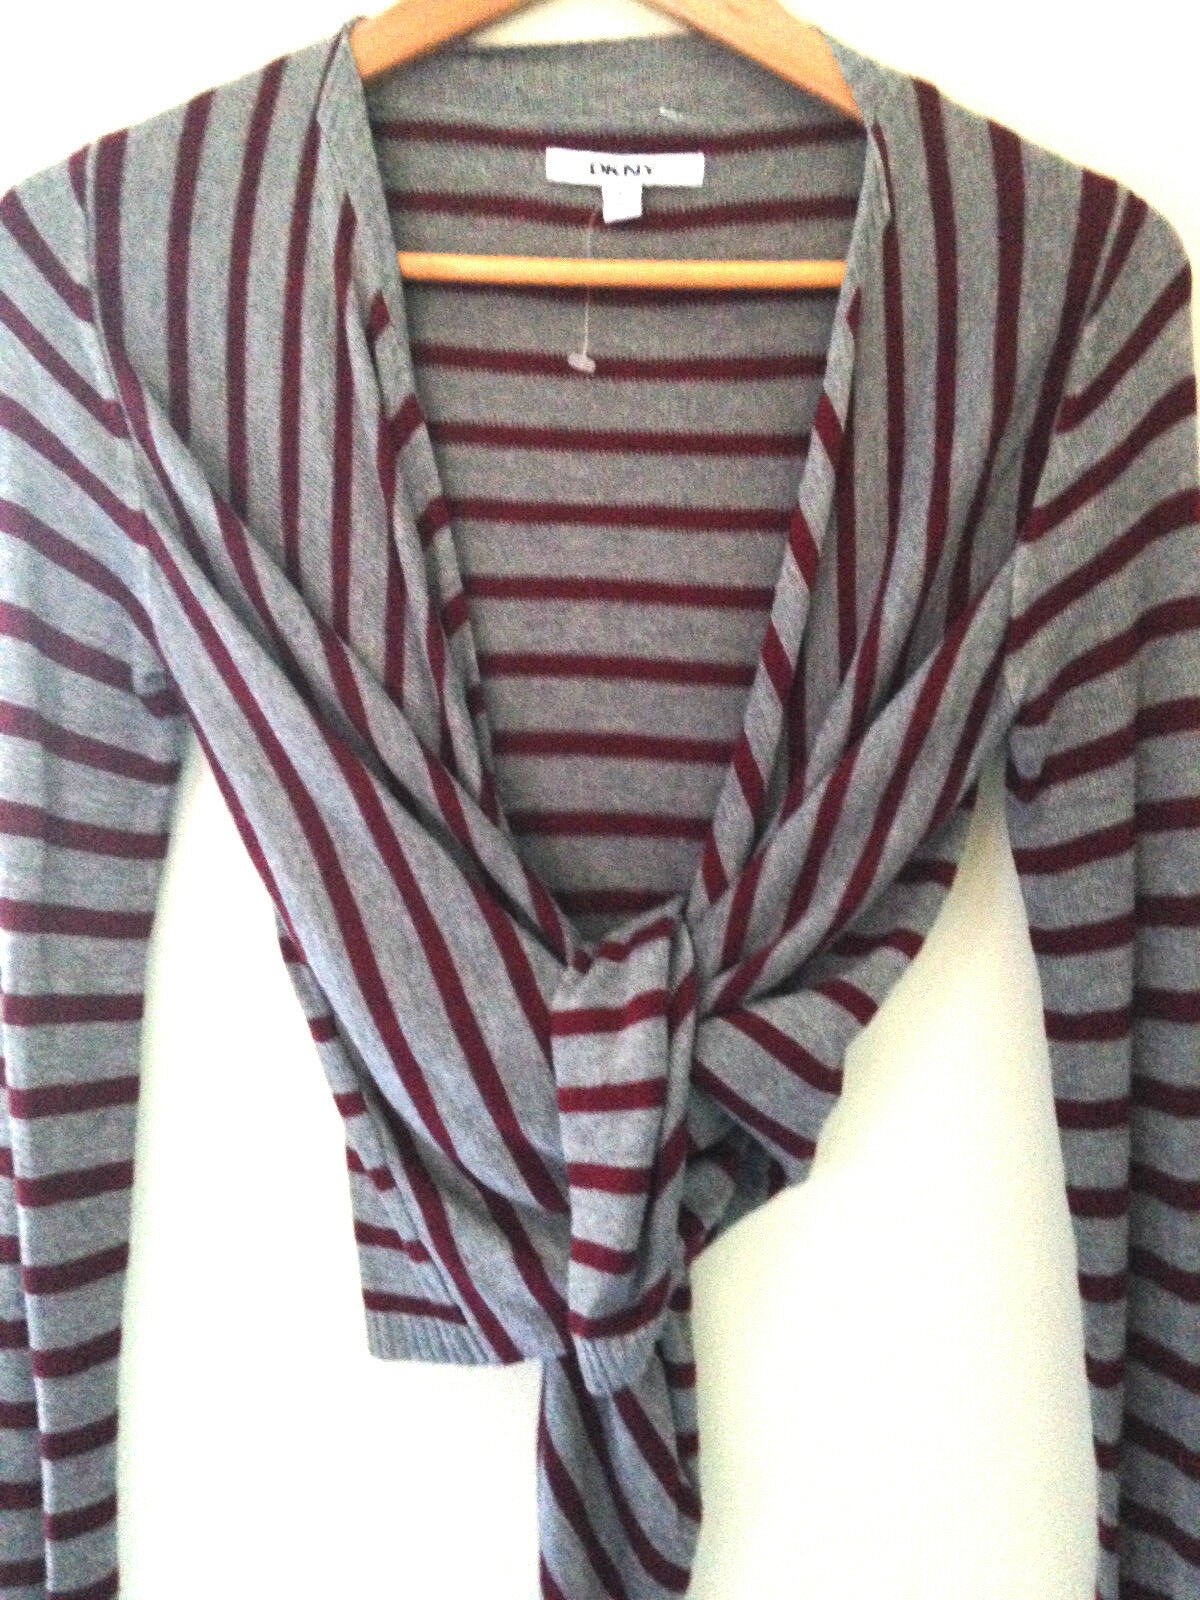 NWT DKNY Elegant Black Cherry Red Gray Knit Wrap Convertible Sweater Top L $175